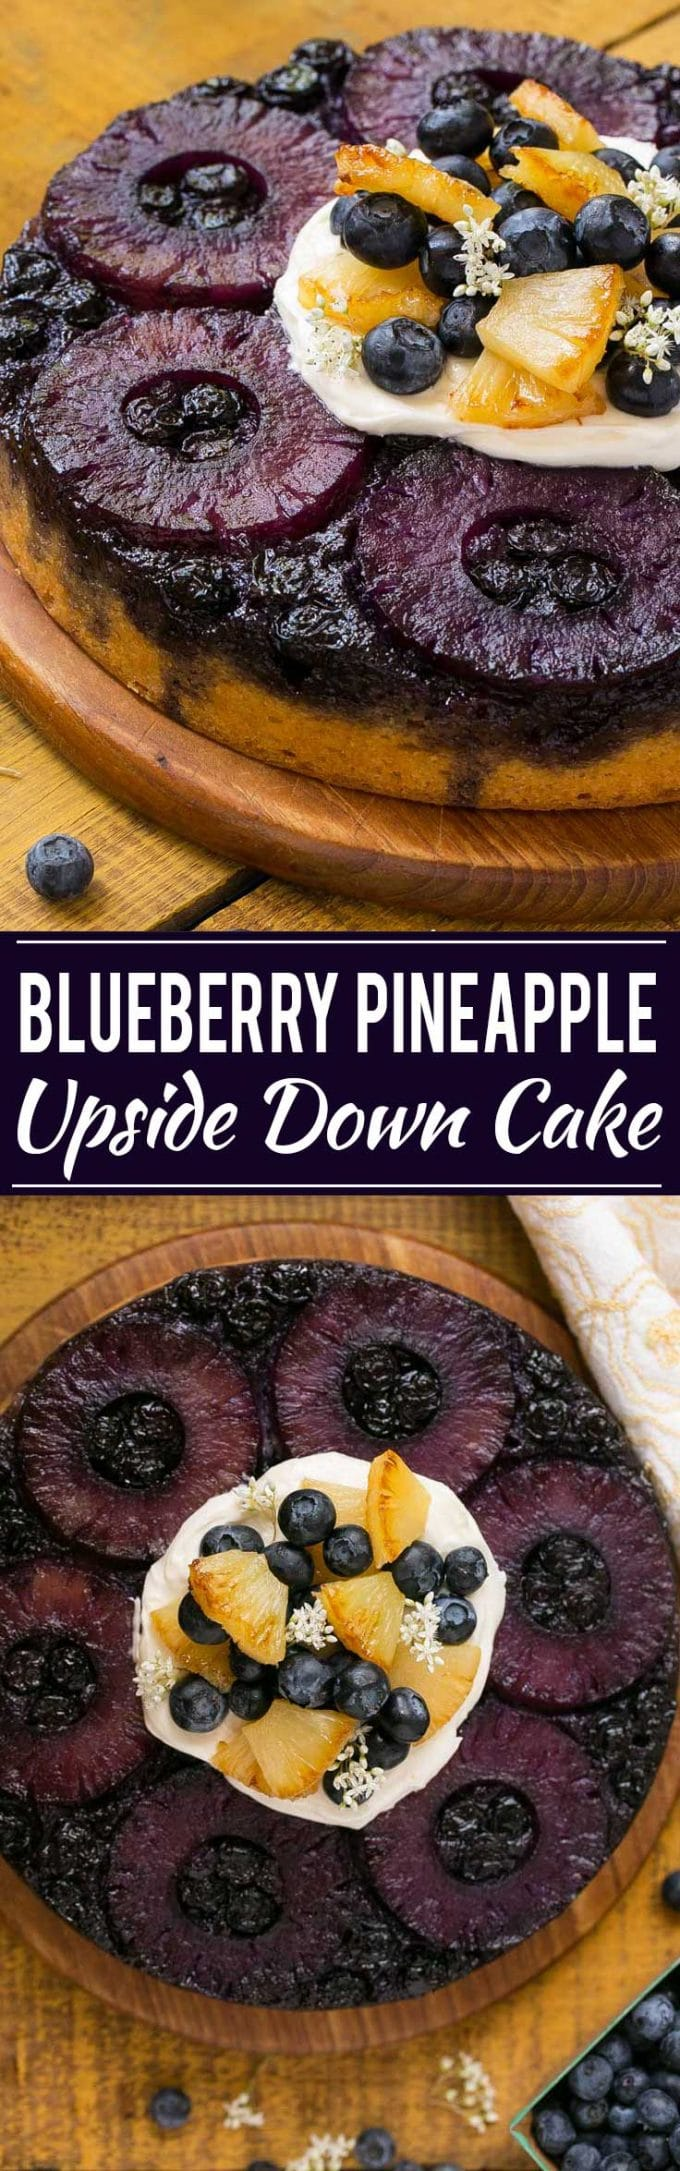 Blueberry Pineapple Upside Down Cake Recipe | Best Pineapple Upside Down Cake | Easy Pineapple Upside Down Cake | Blueberry Cake | Blueberry Upside Down Cake